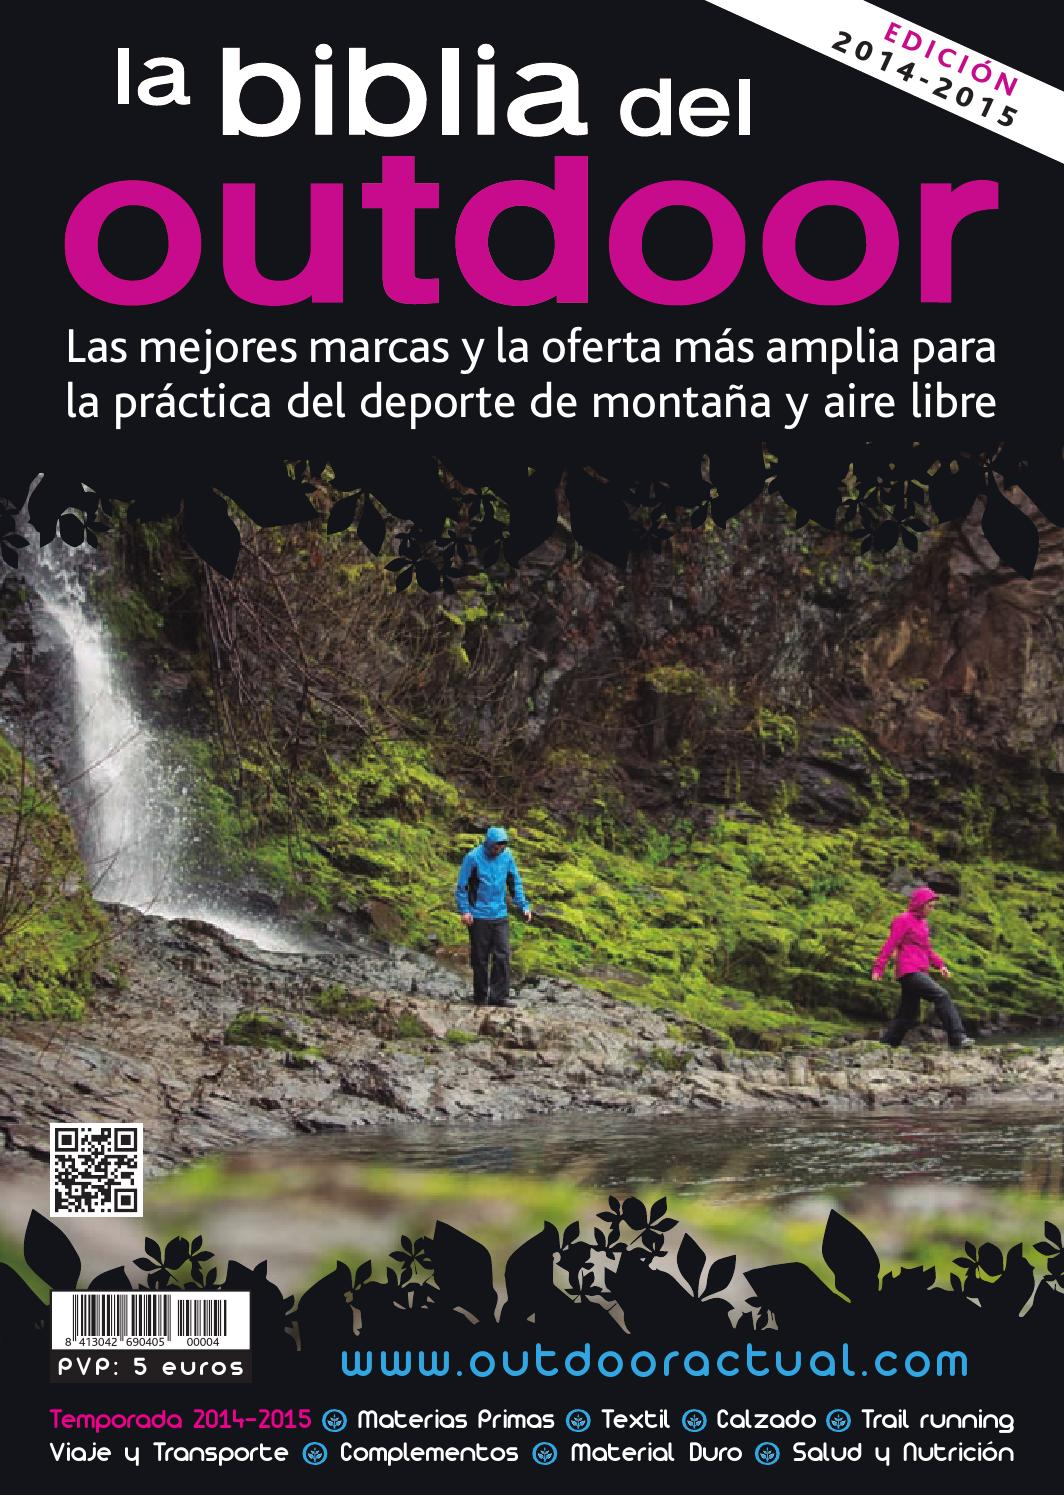 ba41edbd767b La Biblia del Outdoor 2014-15 by Outdoor Actual - issuu